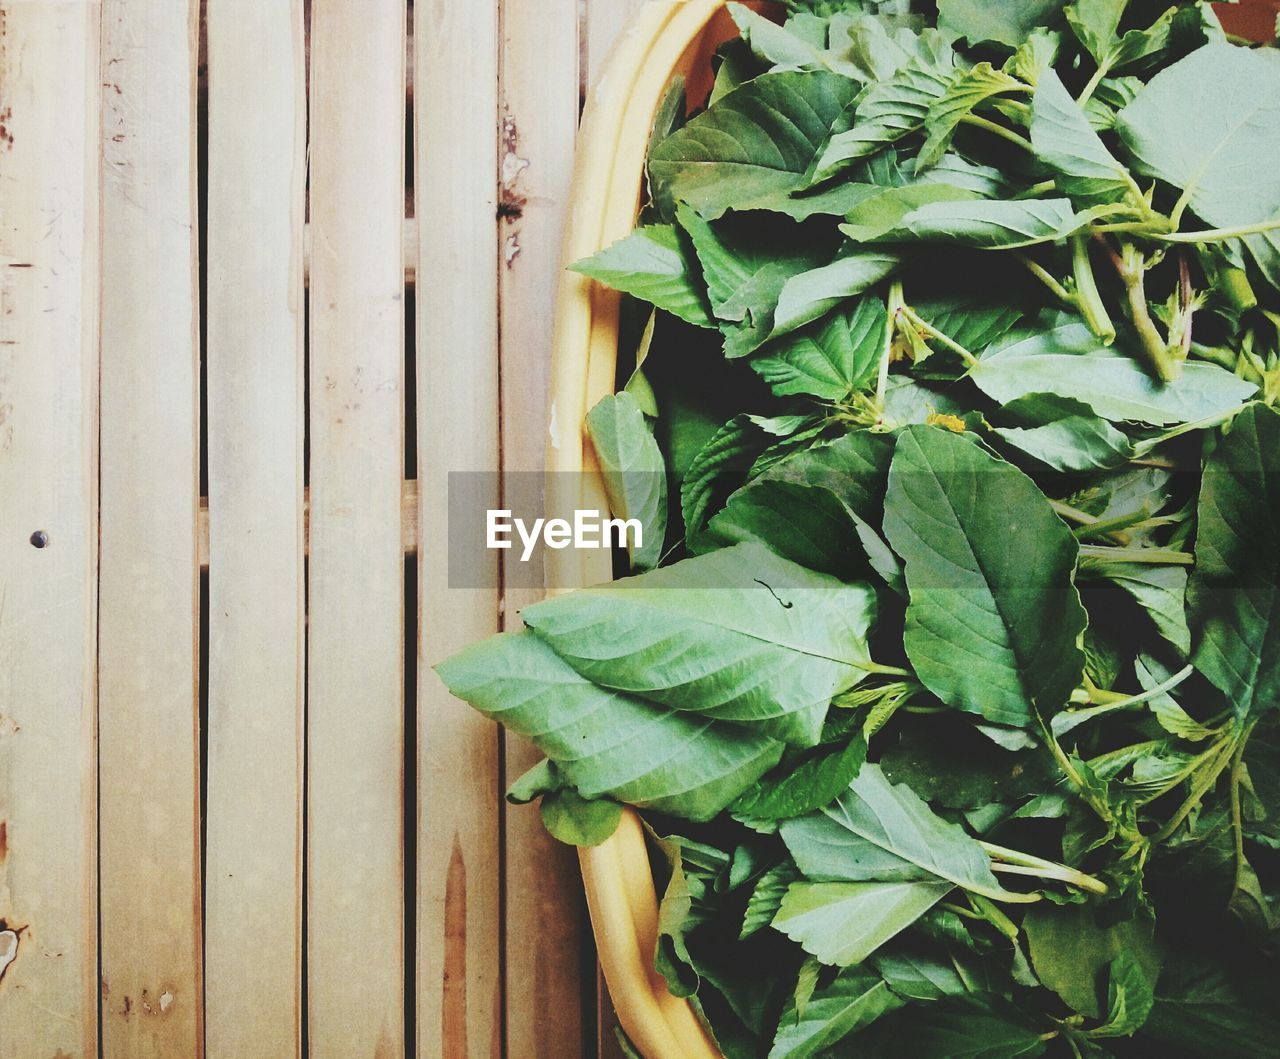 Close-Up Of Leaf Vegetables In Container On Table